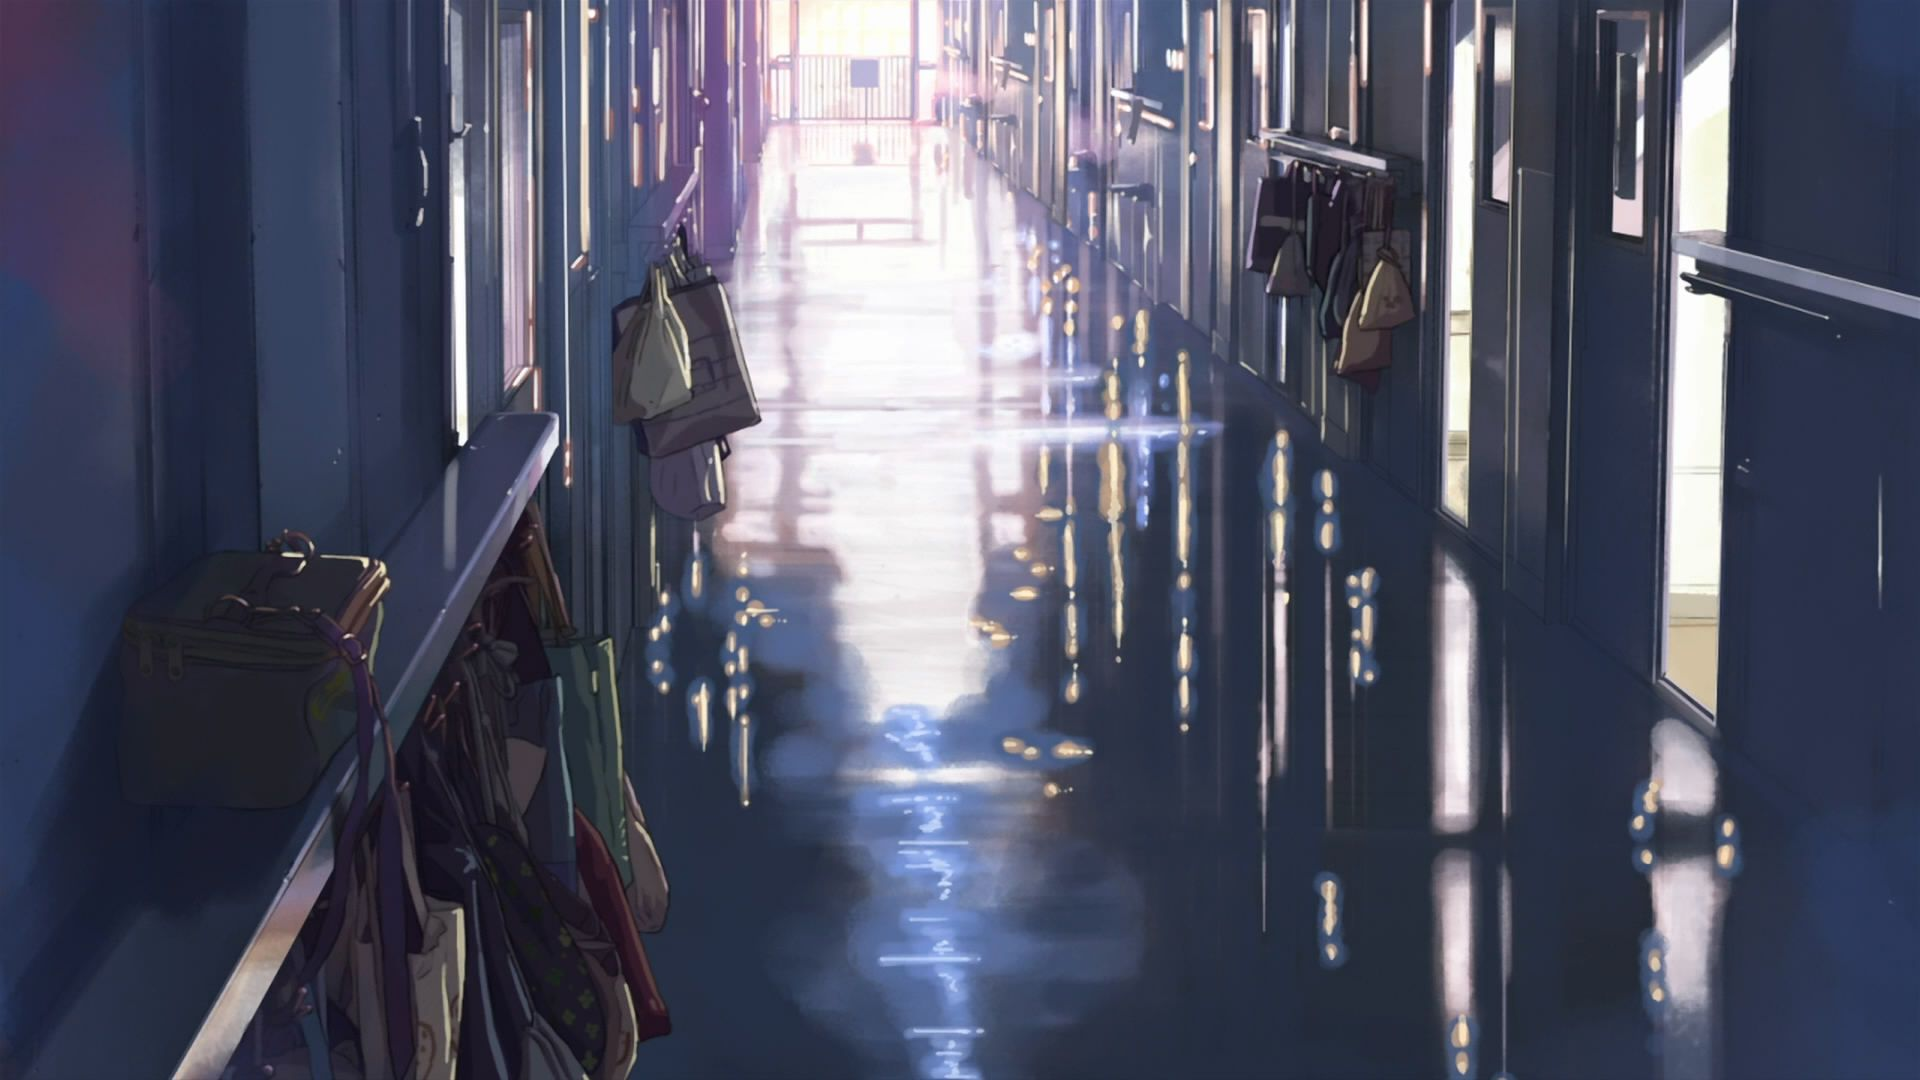 School Makoto Shinkai Hallway 5 Centimeters Per Second Hd